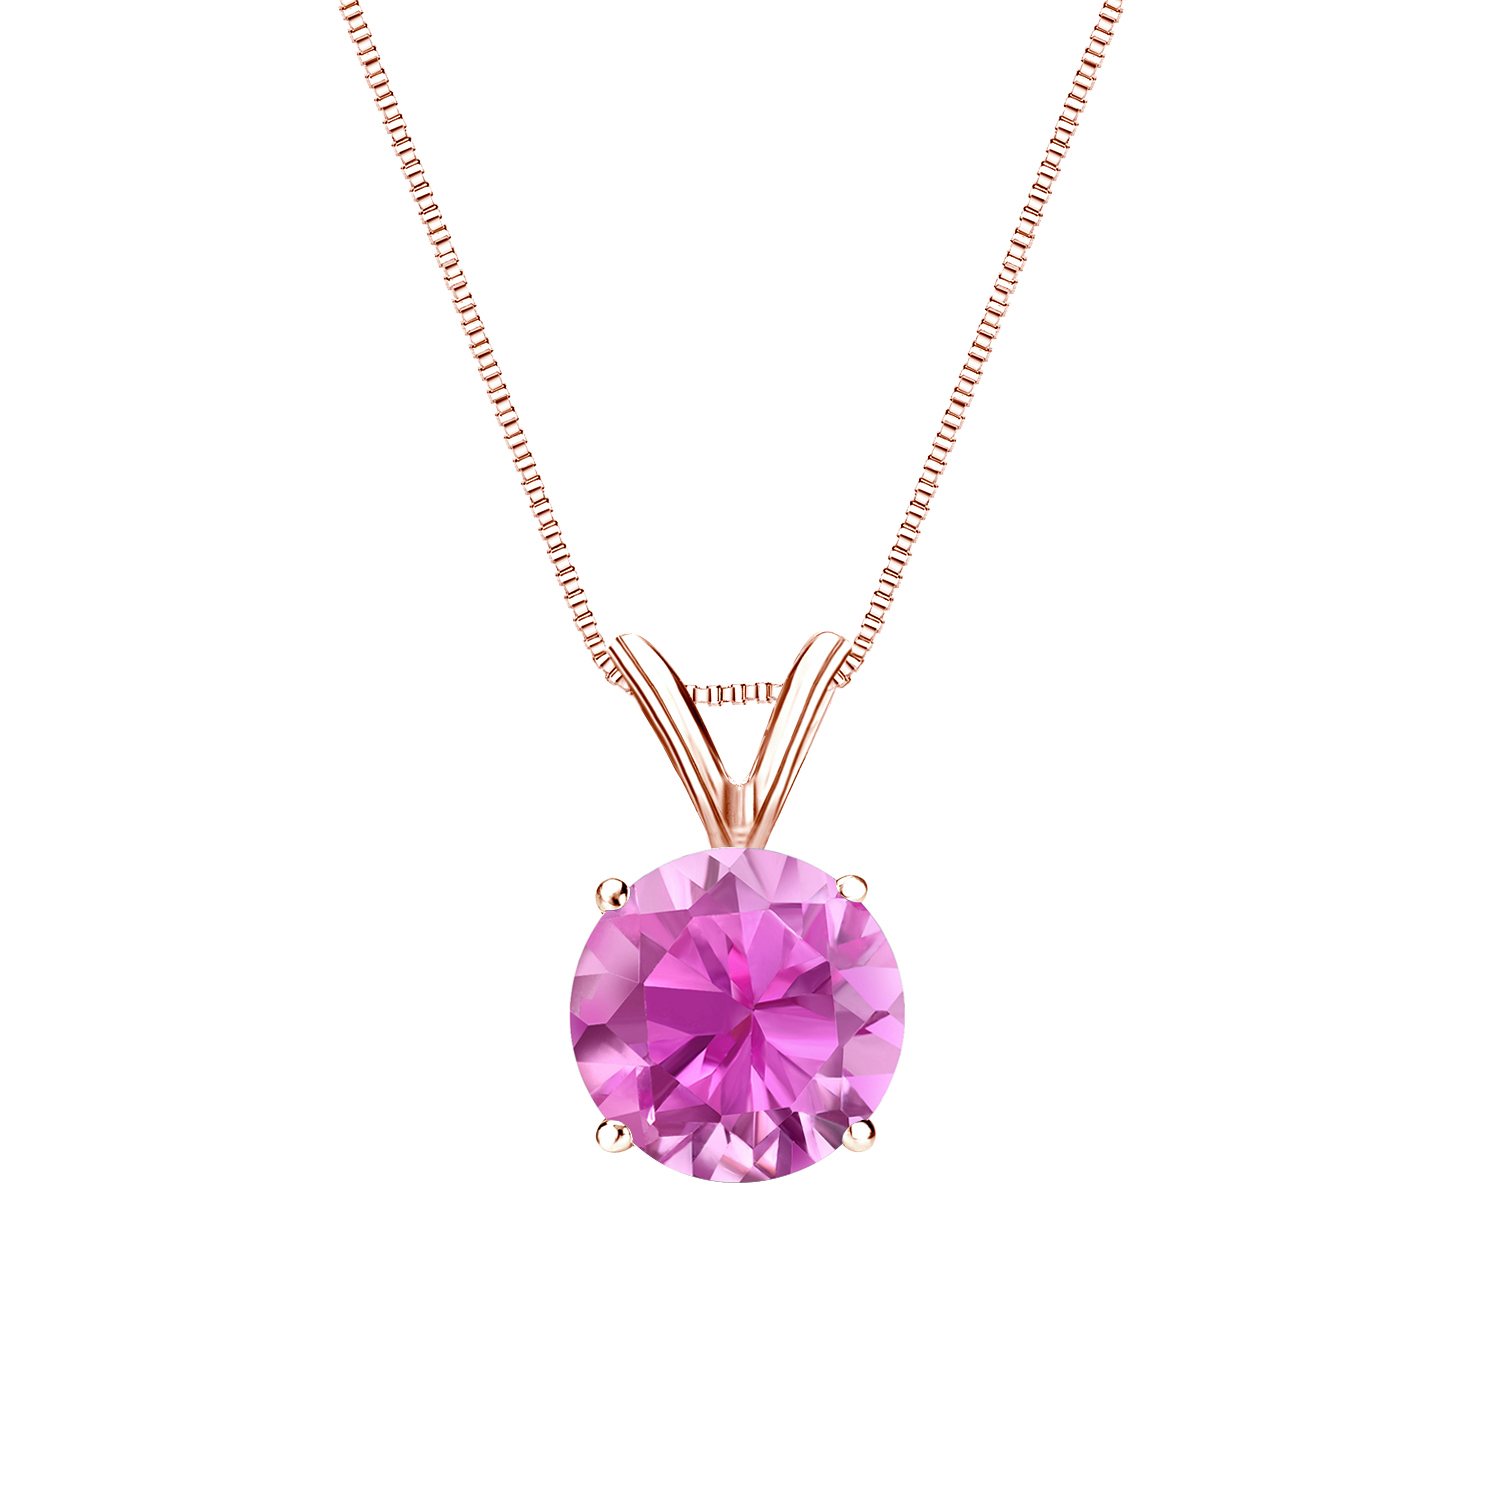 Certified 0.20 ct. tw. Round Pink Sapphire Gemstone Solitaire Pendant in 14k Rose Gold 4-Prong Basket (Pink, AAA)